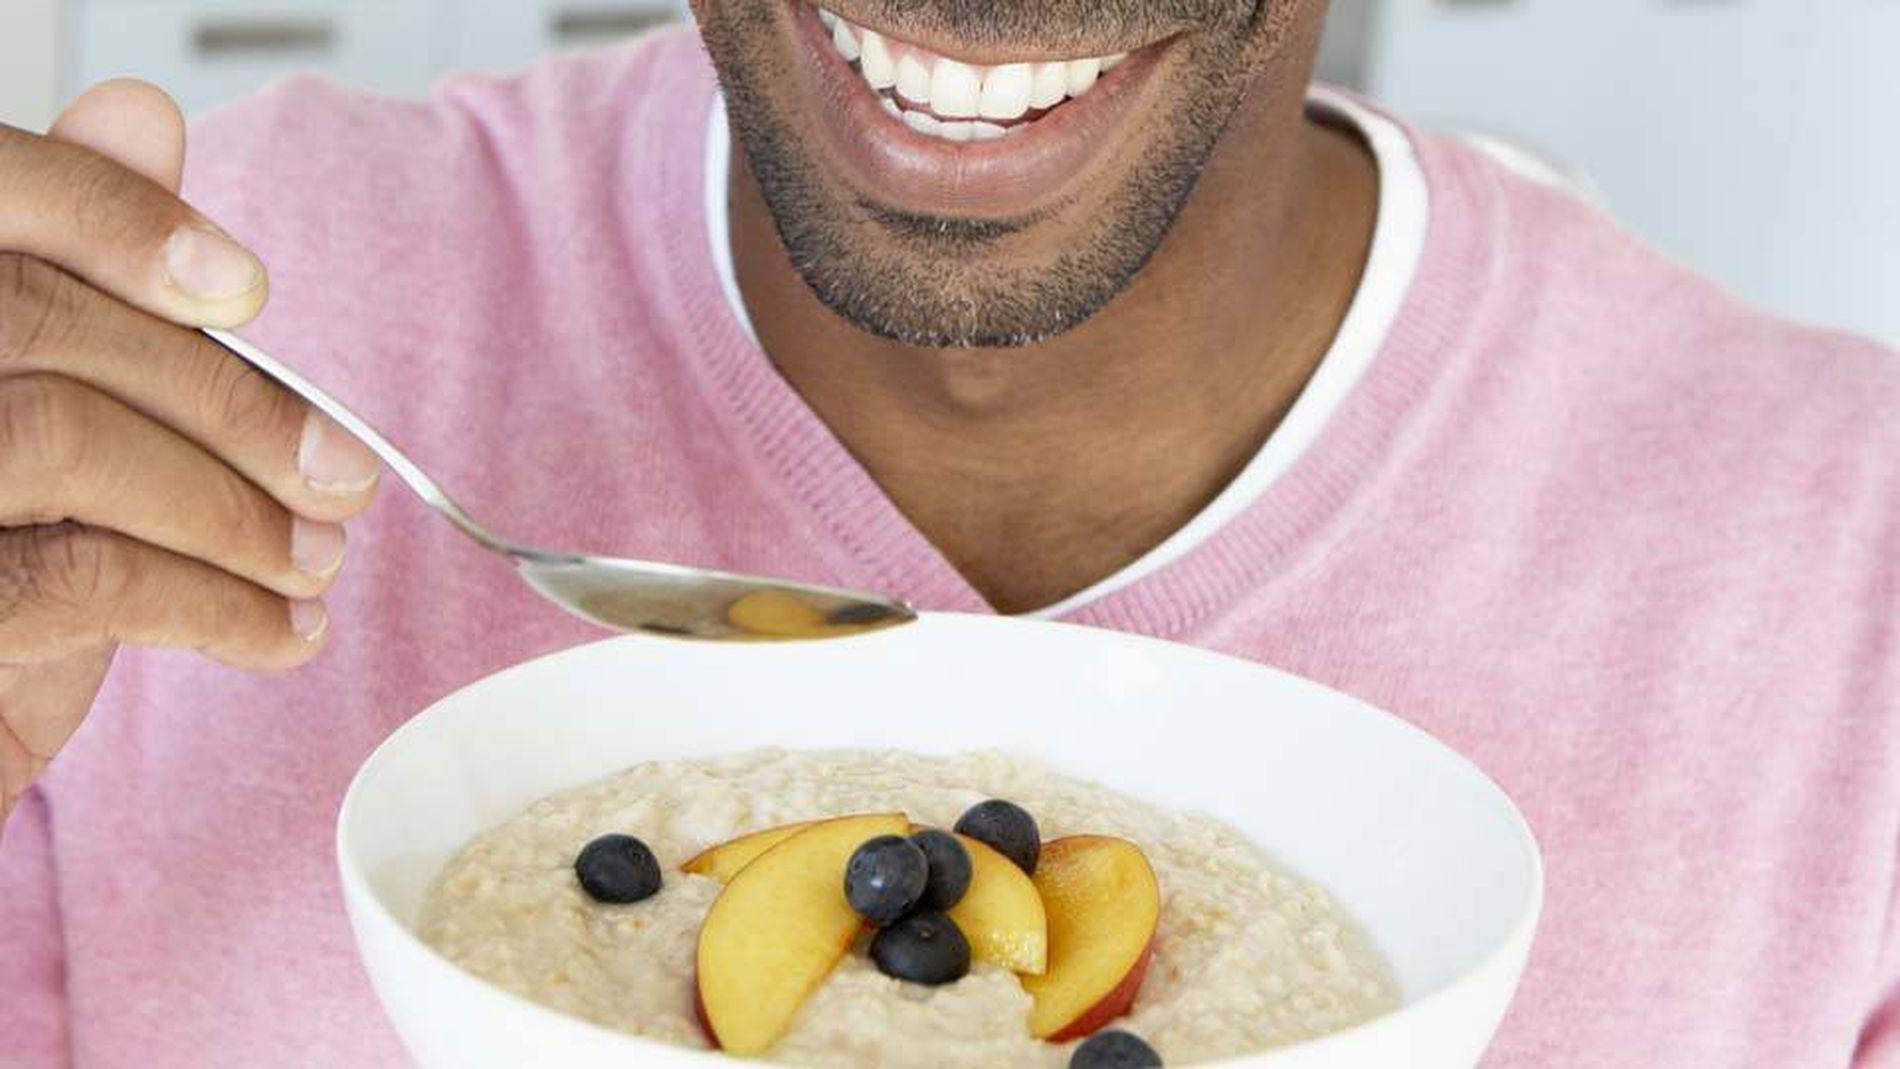 Is Instant Oatmeal Really That Bad?